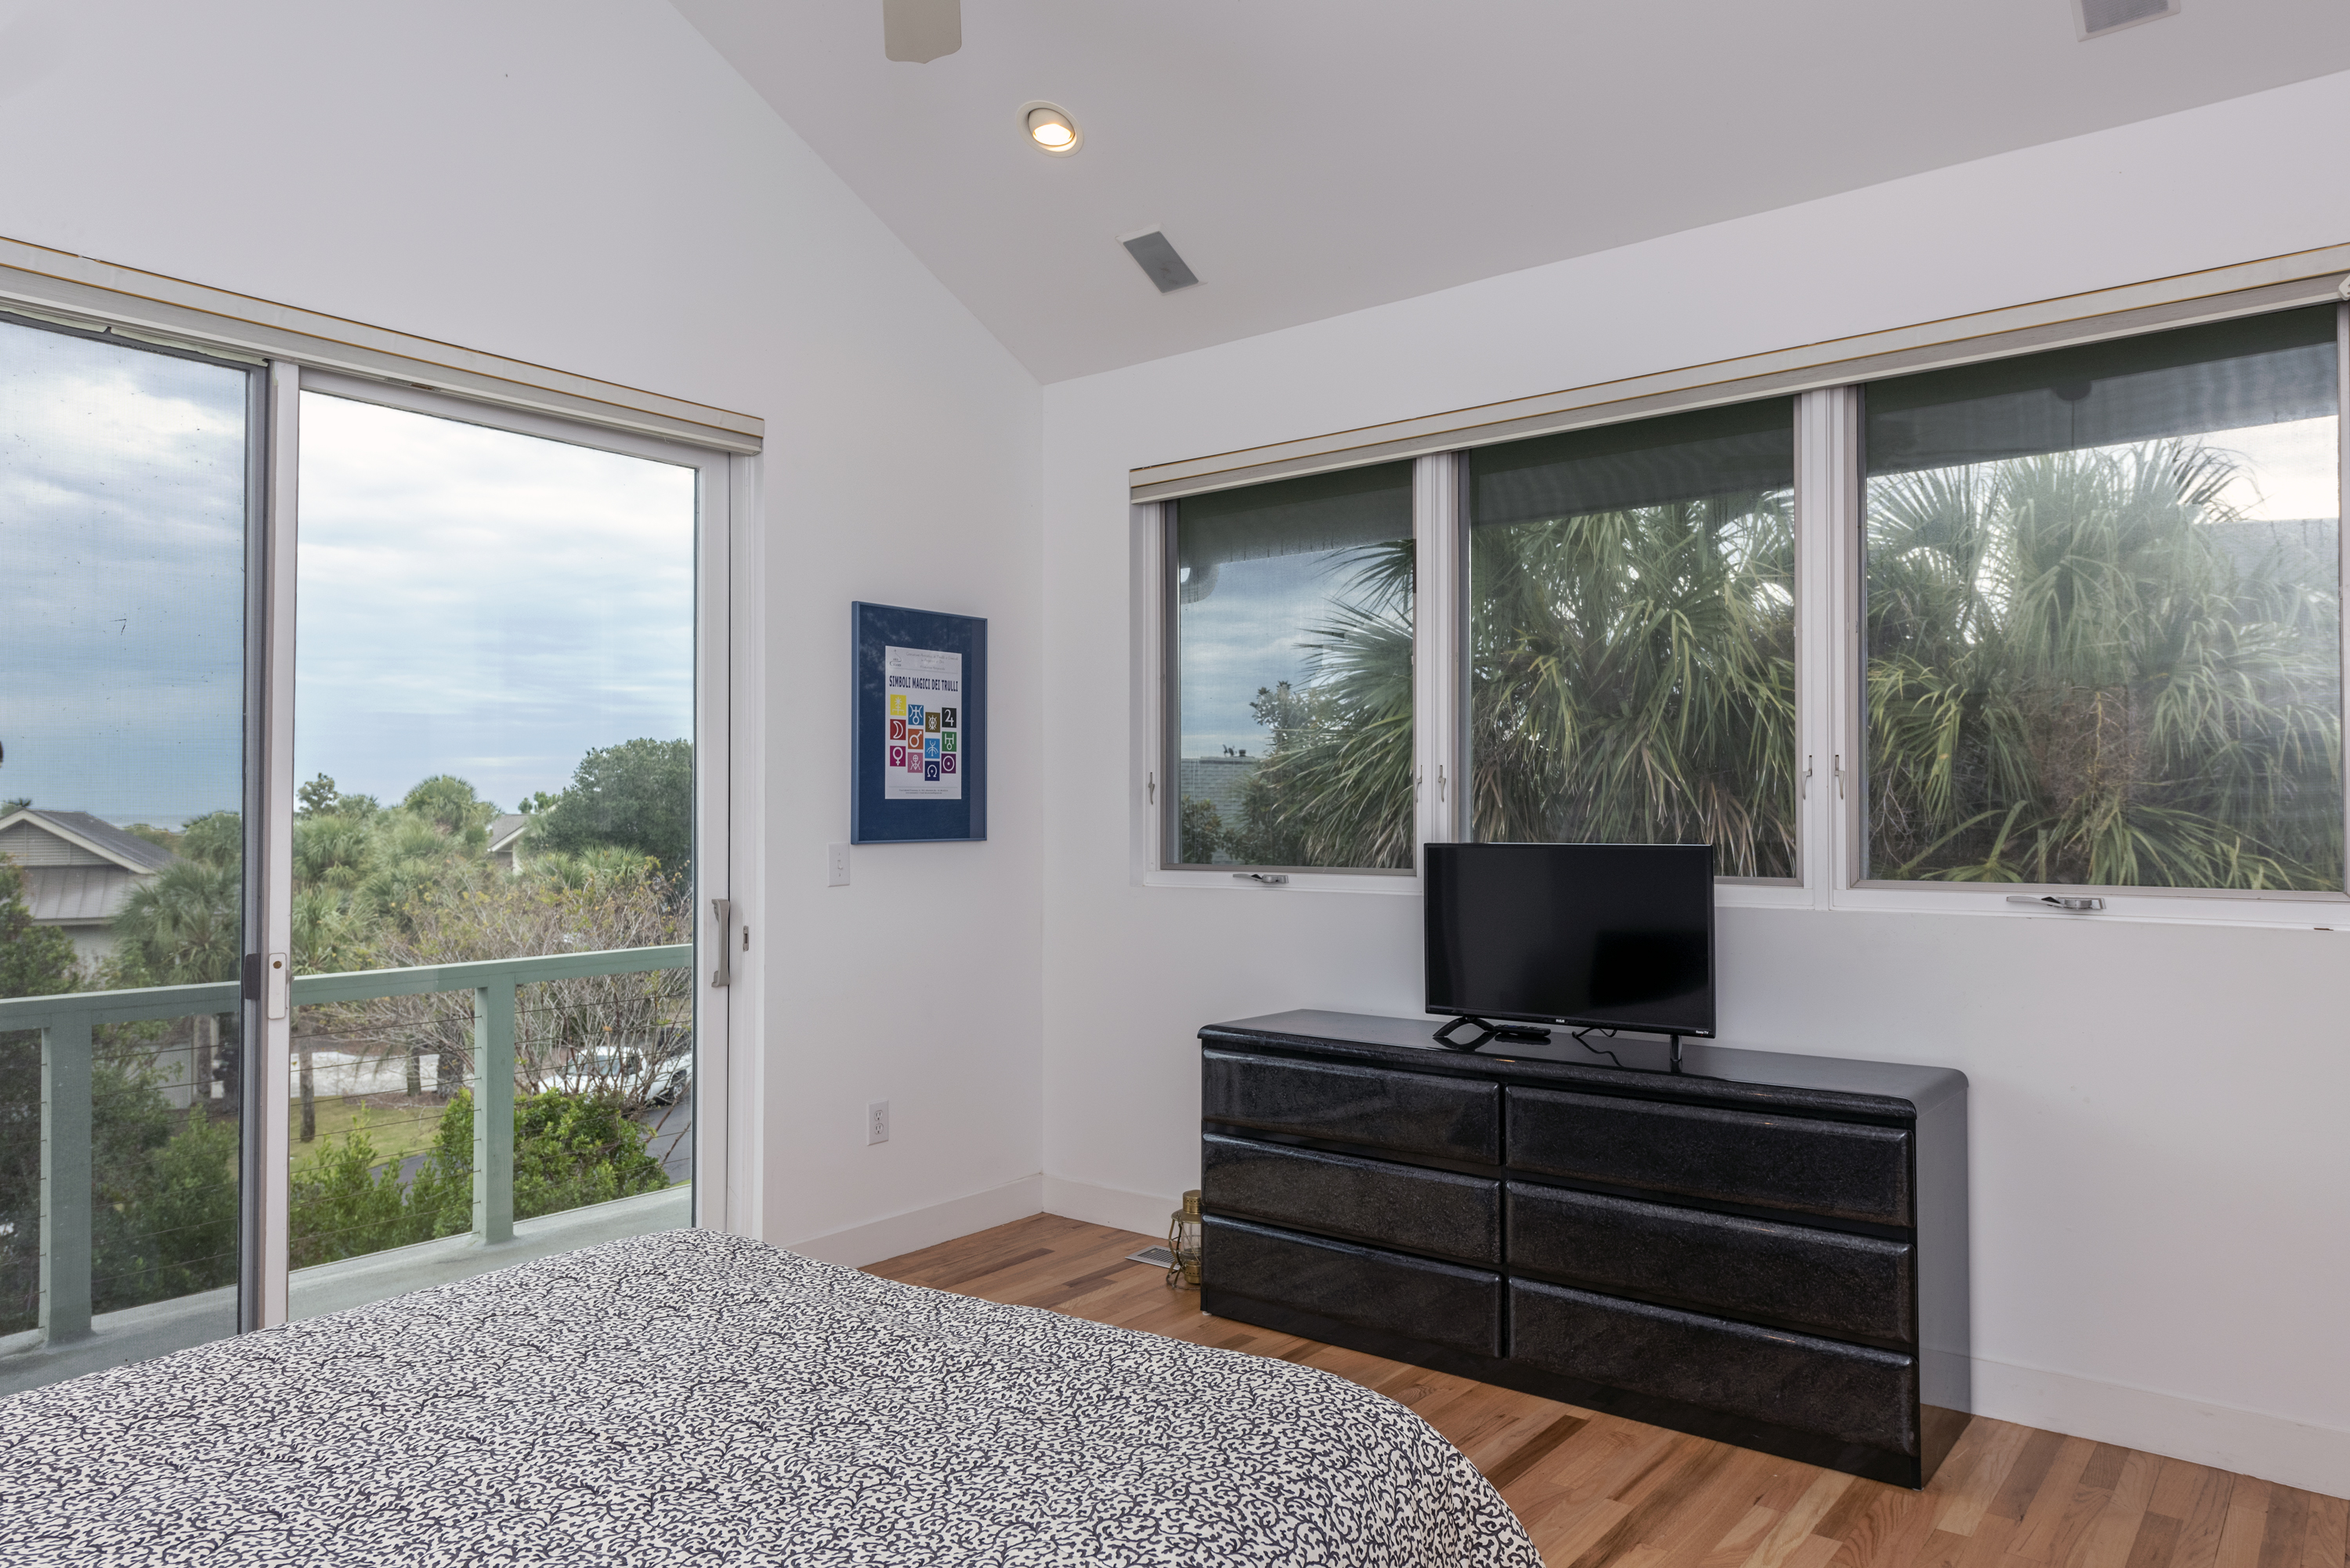 Master bedroom access to private deck with ocean views